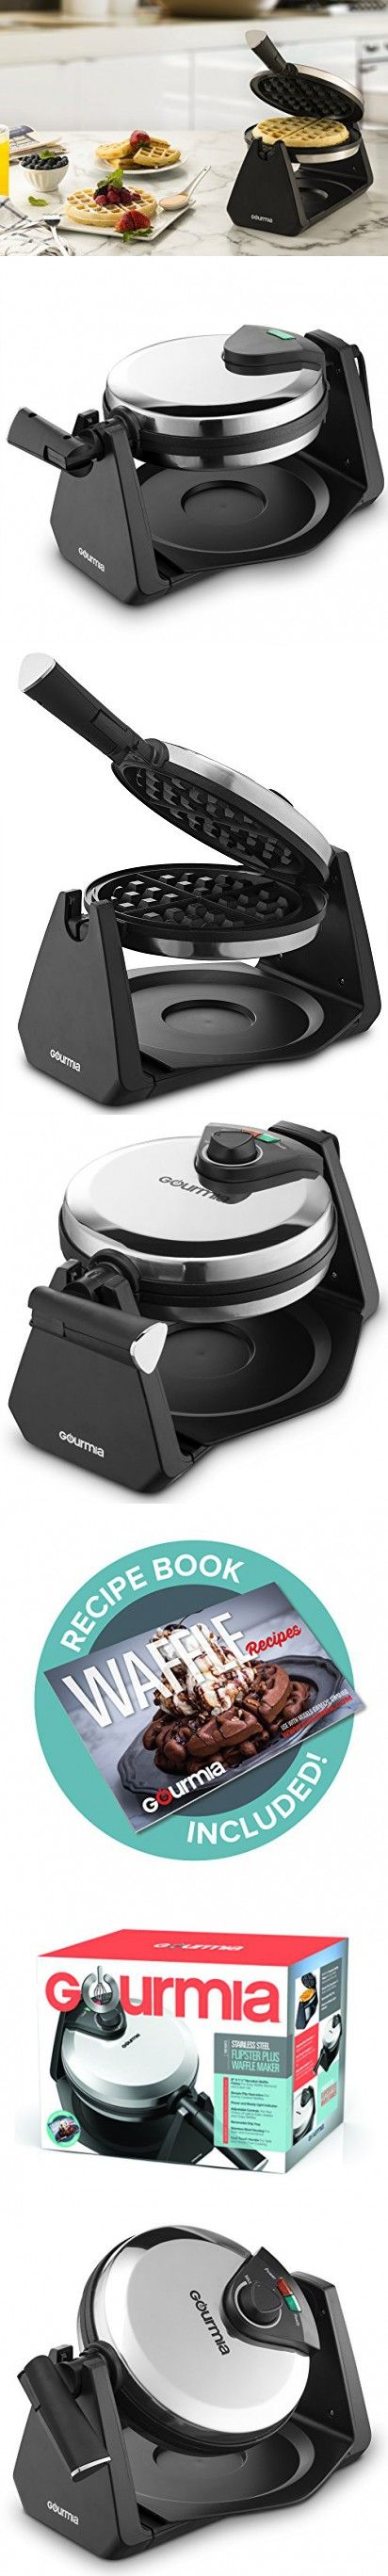 Gourmia Gwm460 Stainless Steel Waffle Maker  180 Degree Fast & Easy  Flipping, Foldable Handle